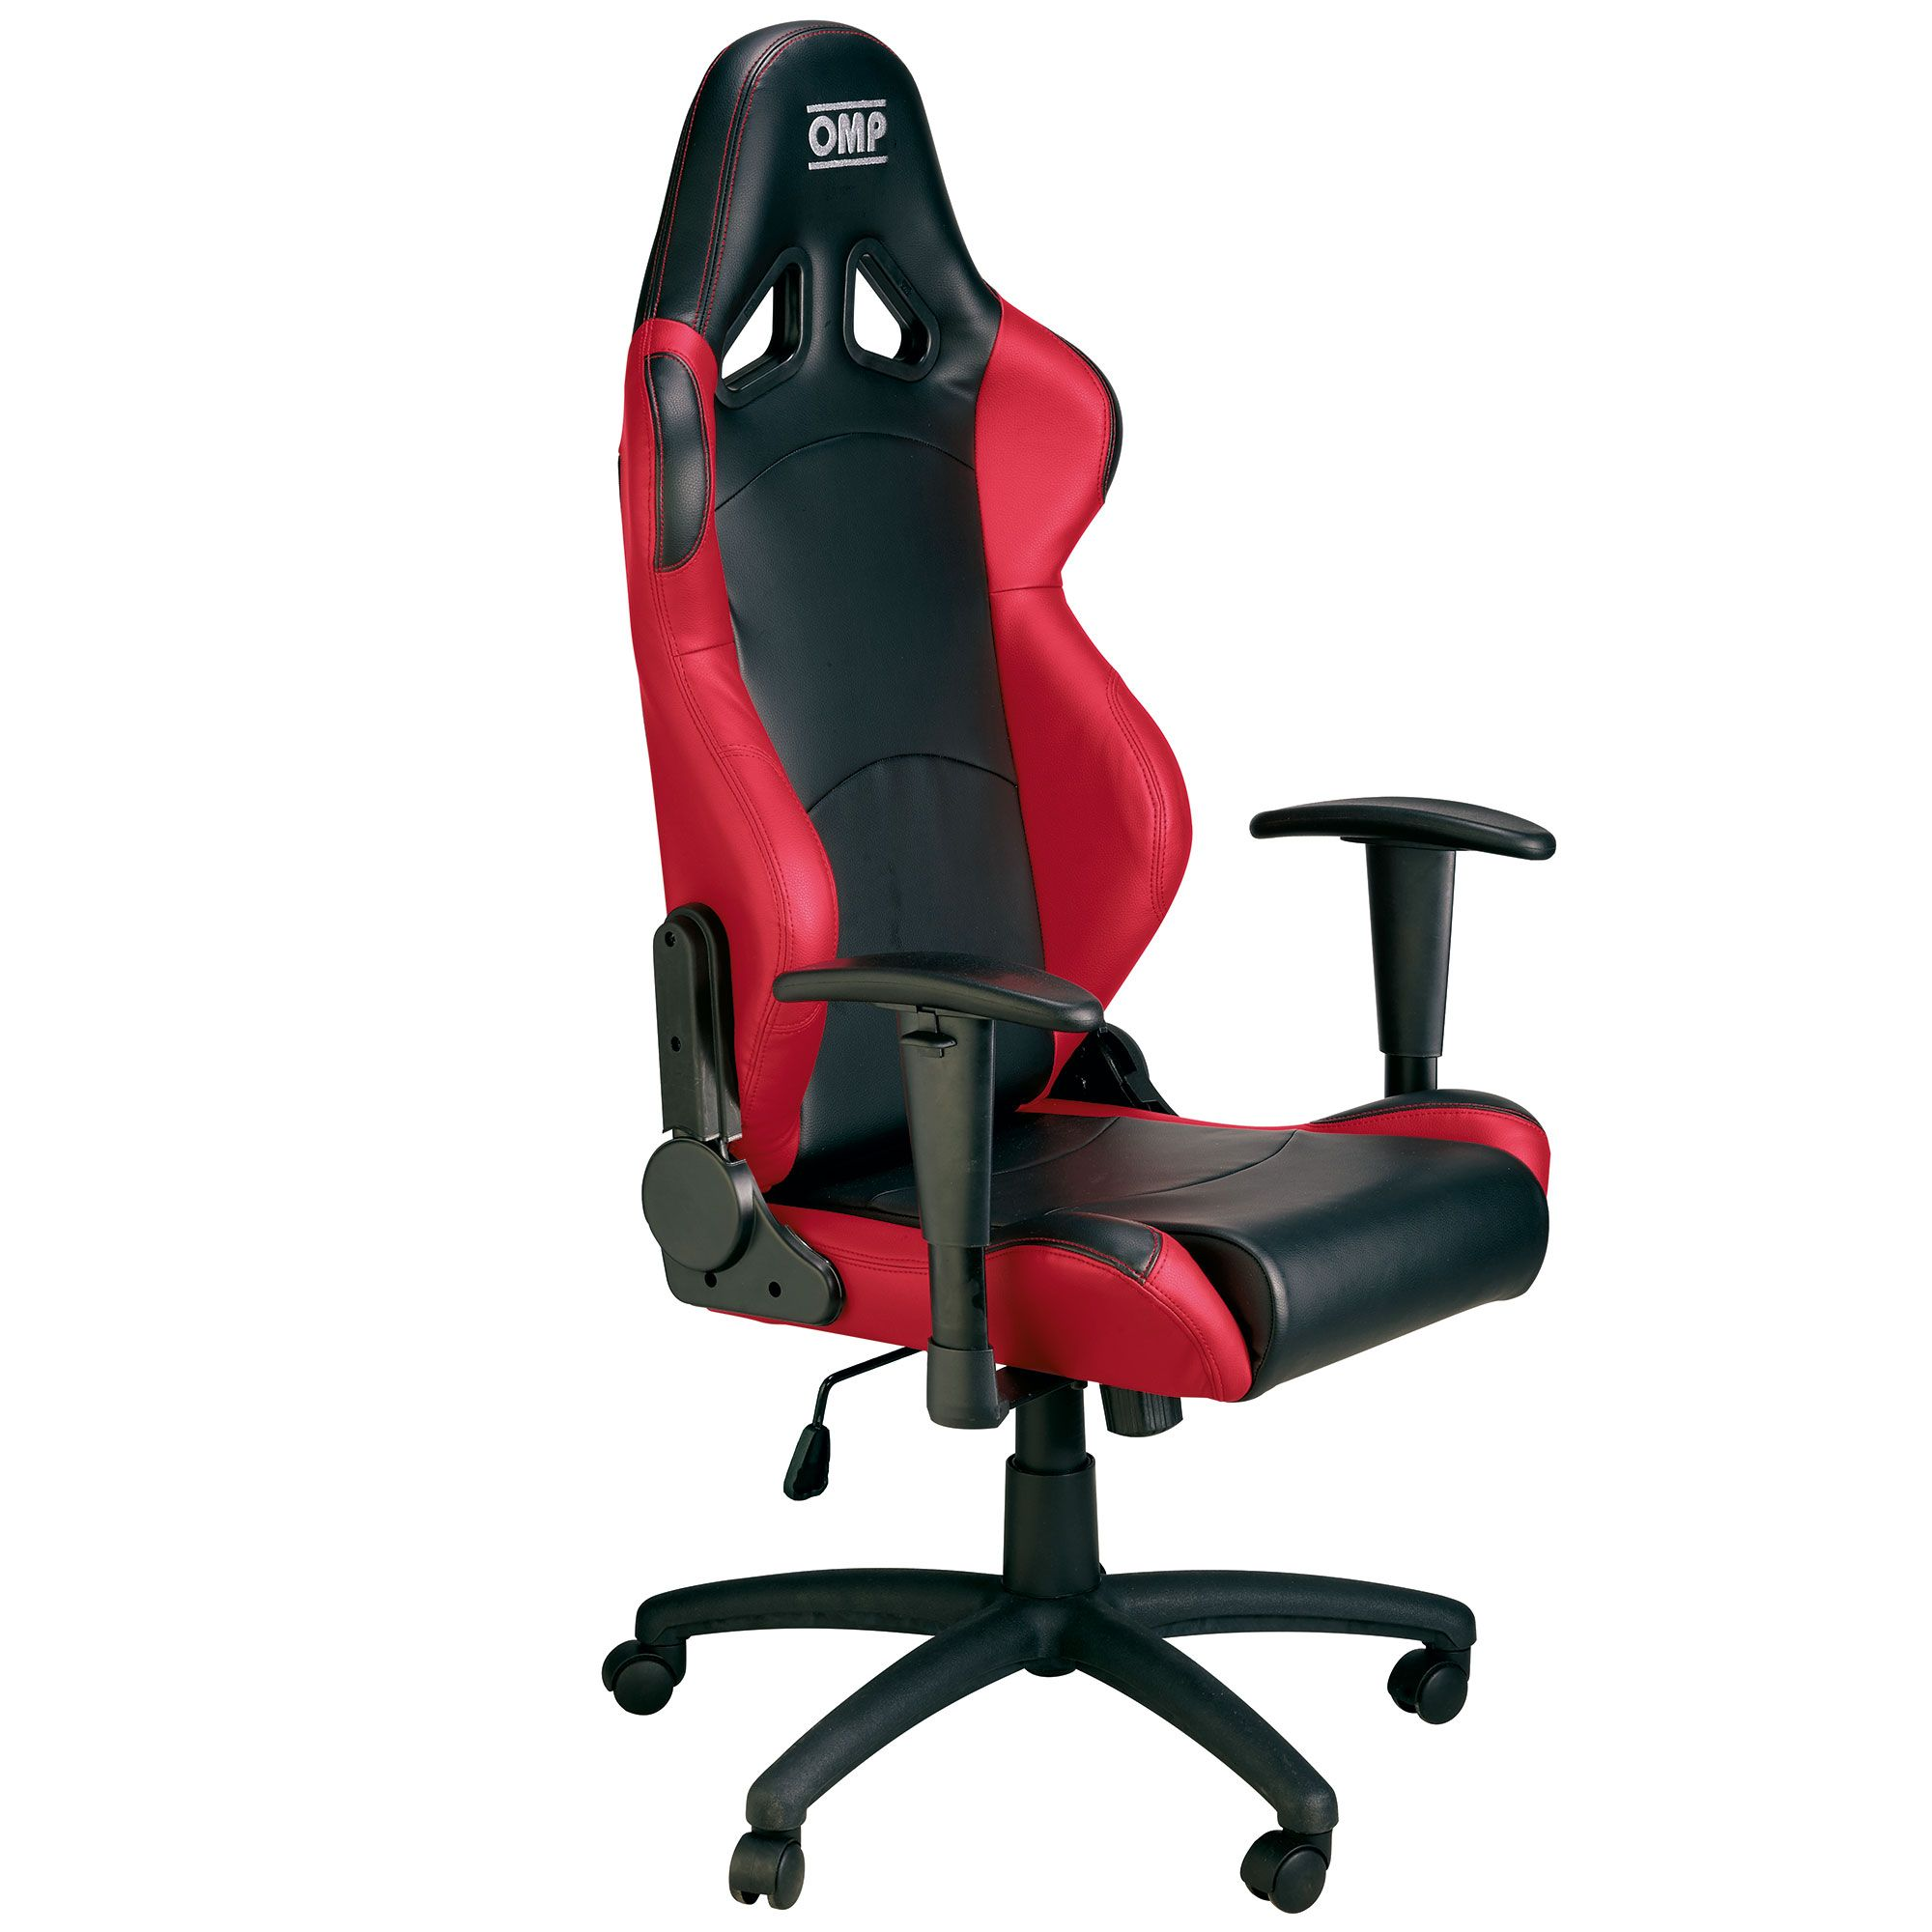 Racing Seat Office Chair Details About Omp Racing Seat Swivel Wheeled Office Chair Faux Leather Black Red